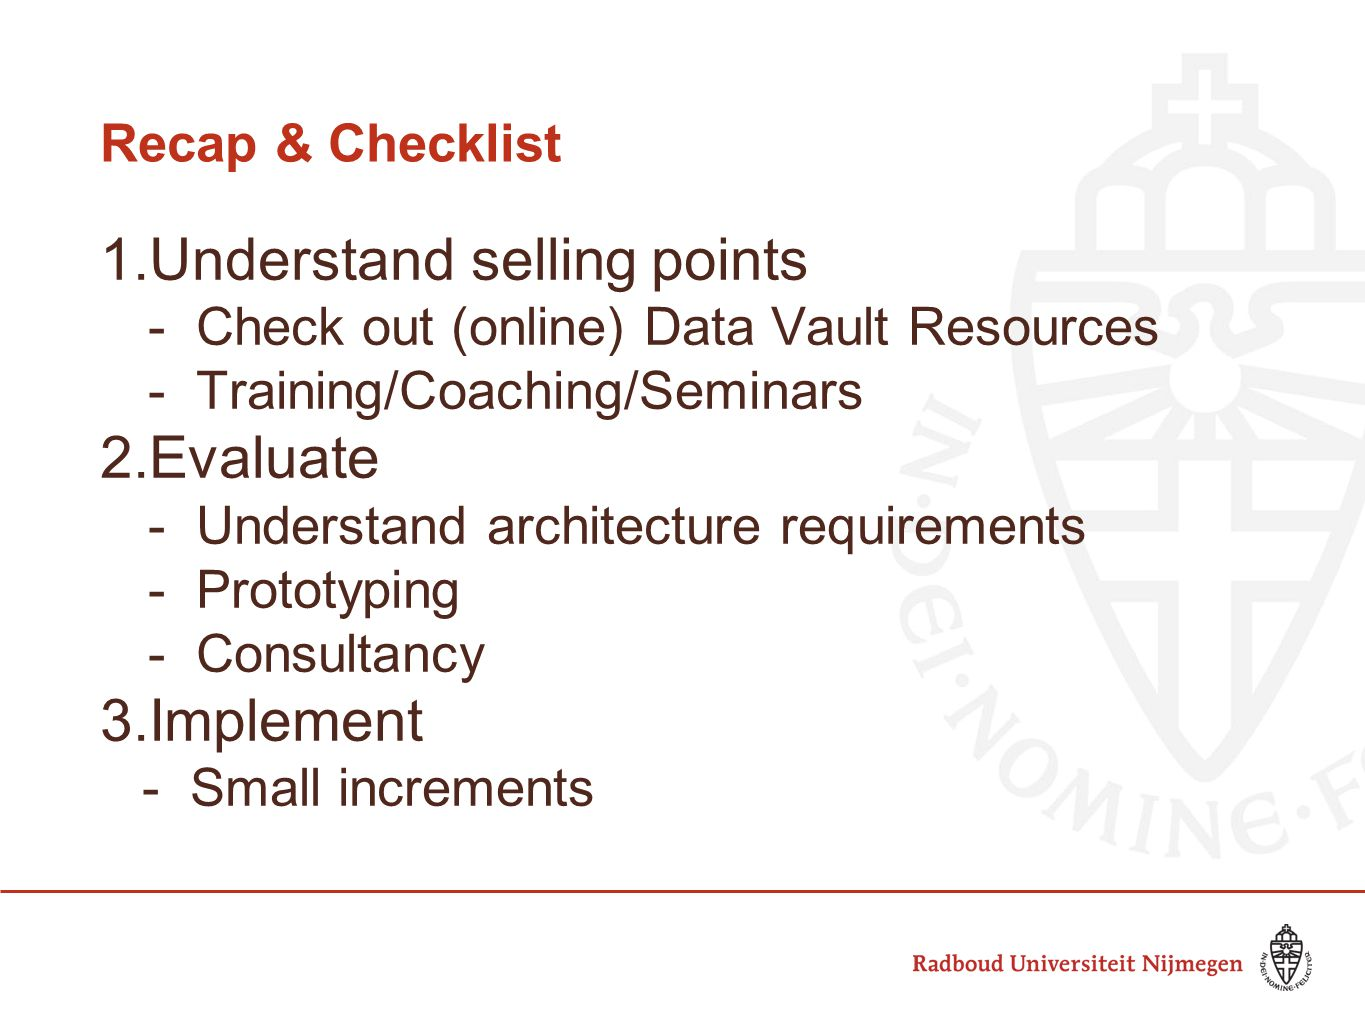 Understand selling points